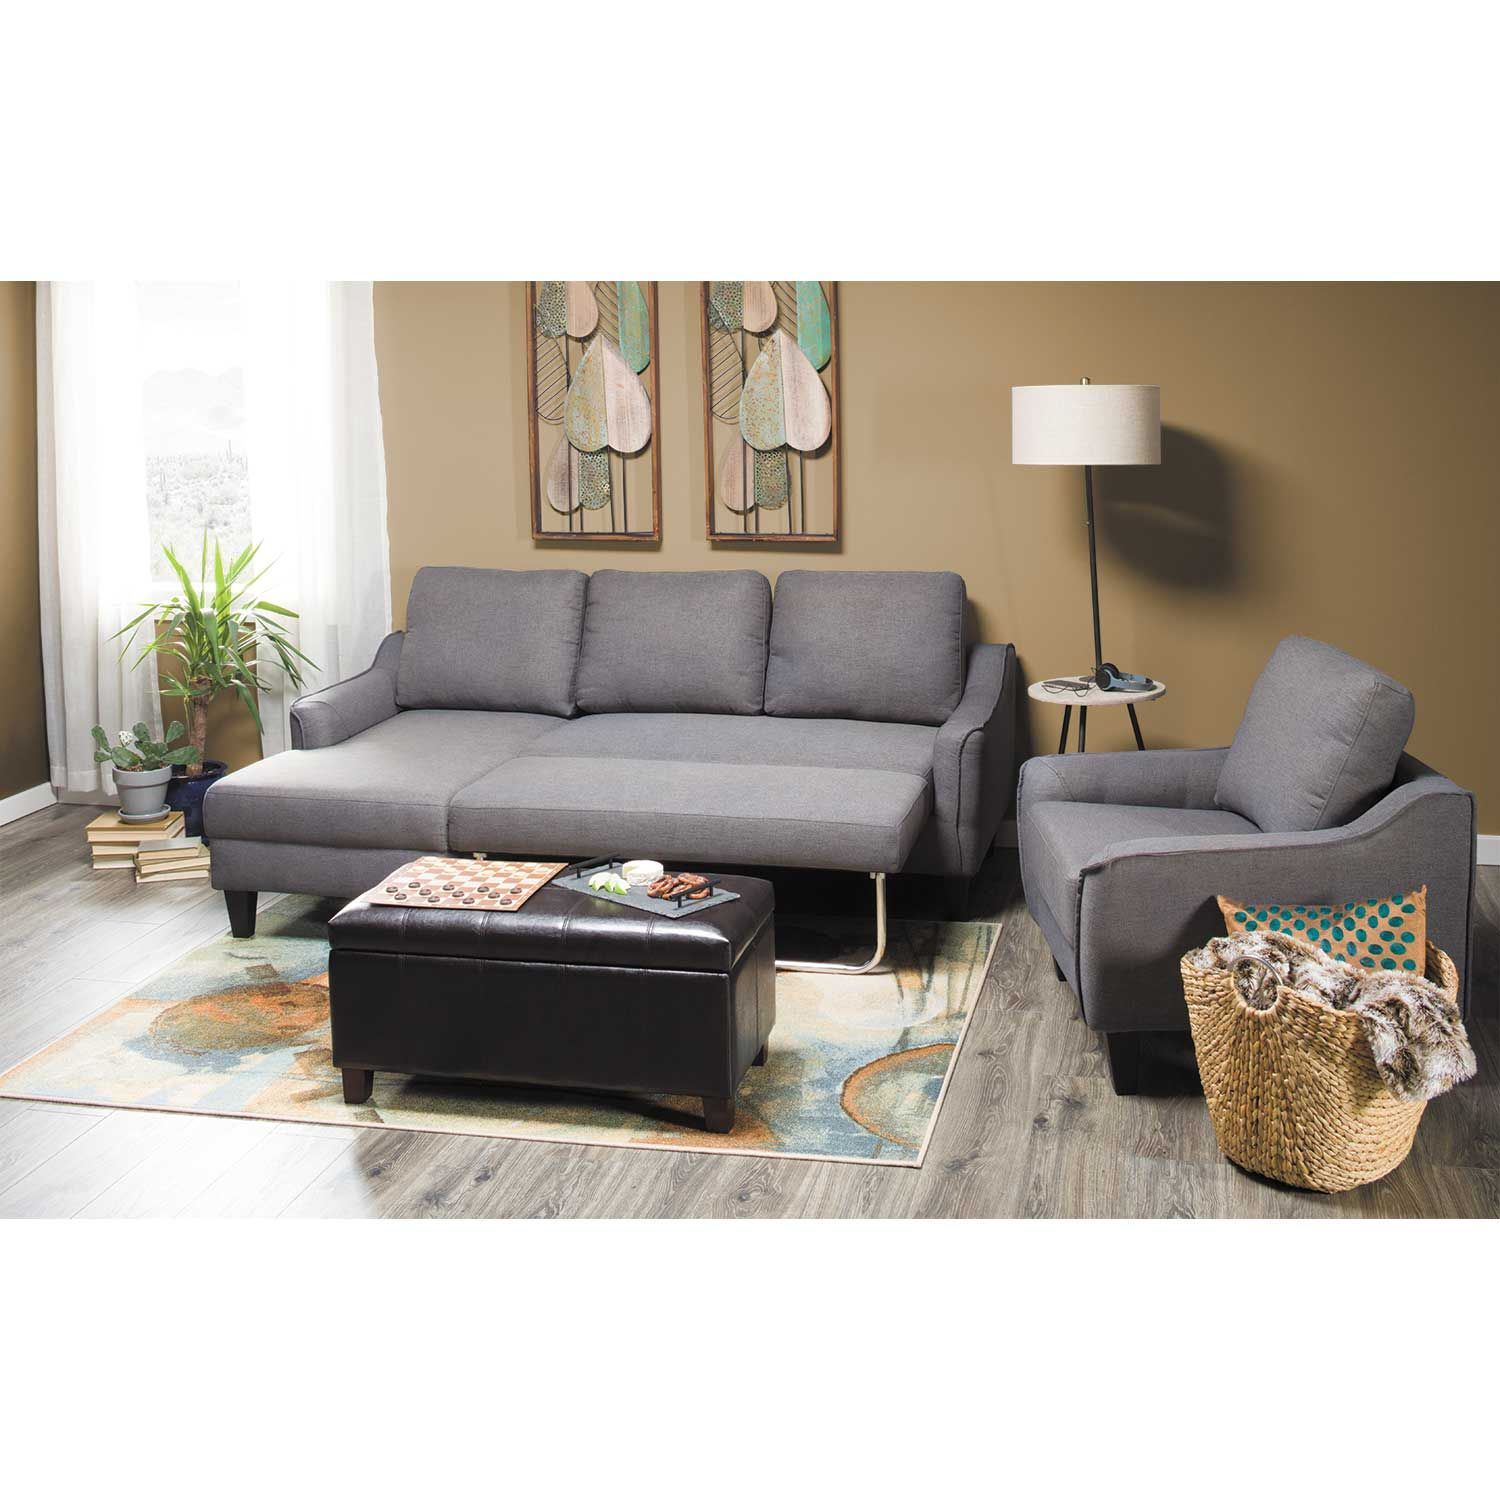 Peachy Jarreau Gray Sofa Sleeper 1150271 Ashley Furniture Afw Com Gmtry Best Dining Table And Chair Ideas Images Gmtryco